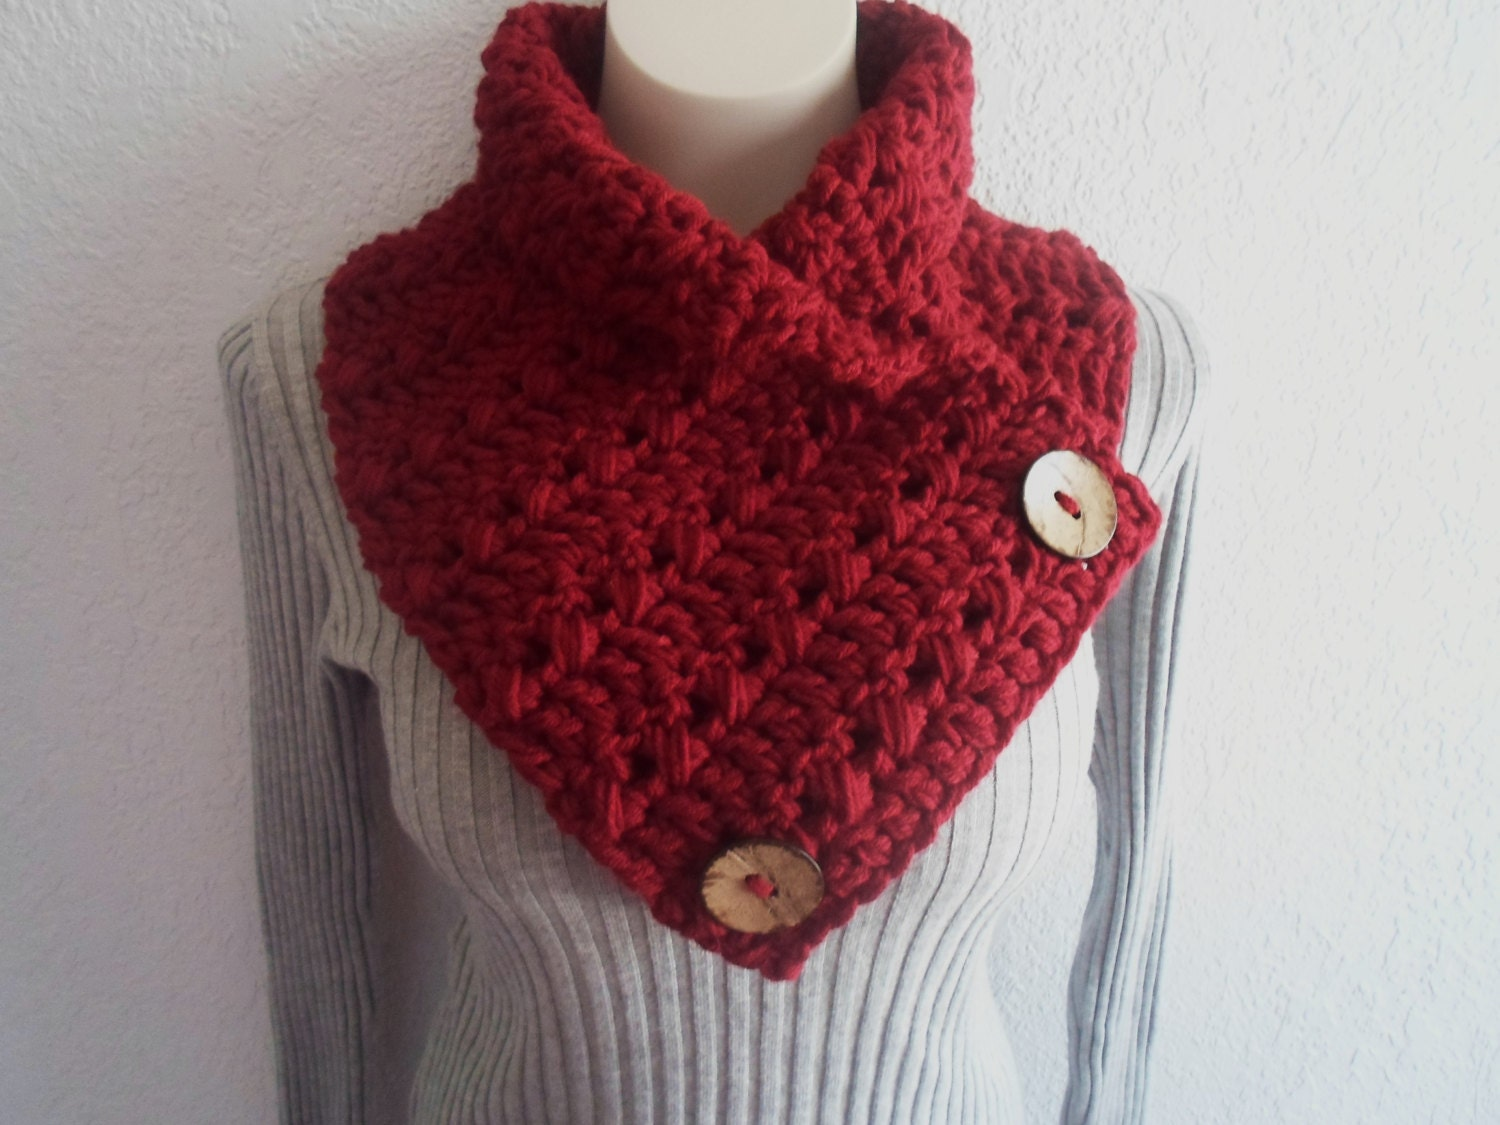 Cranberry Dark Ruby Red Chunky Crochet Cowl Neckwarmer Scarf with Wood Buttons, Ready to Ship